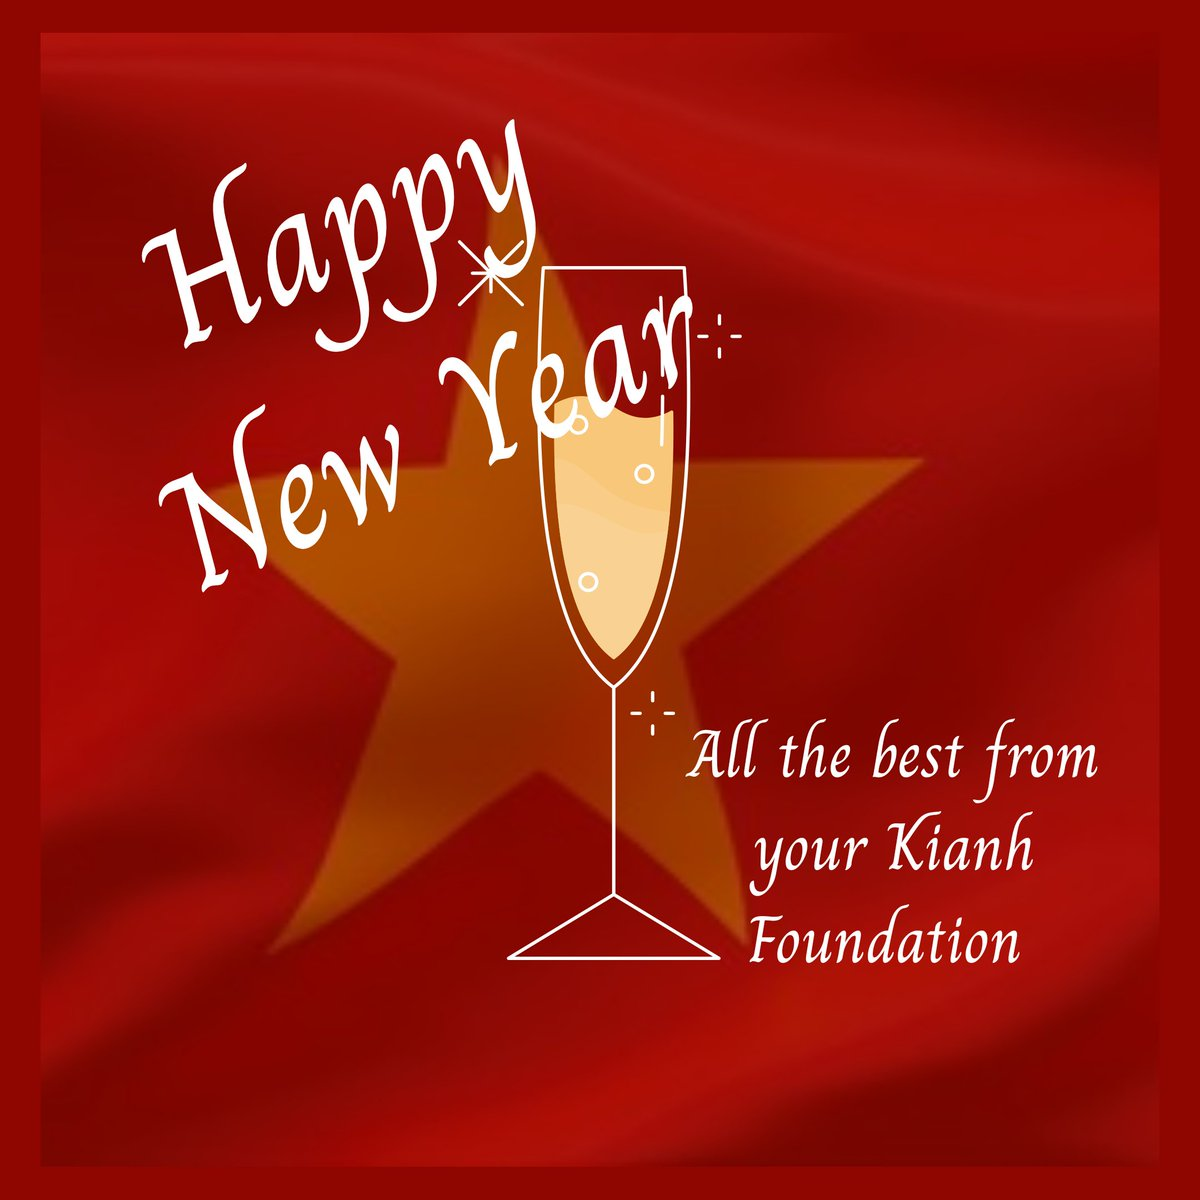 🥂 Wishing you all a peaceful and fulfilling 2021. All our best, from your Kianh Foundation.   #HappyNewYear2021 #HAPPYNEWYEAR  #unionisstrength #givingtuesday #givingback #givingtuesday2020 #EverybodyBenefits #Fundraising #Donate #Charity #hoianvietnam #hoian #danang #vietnam